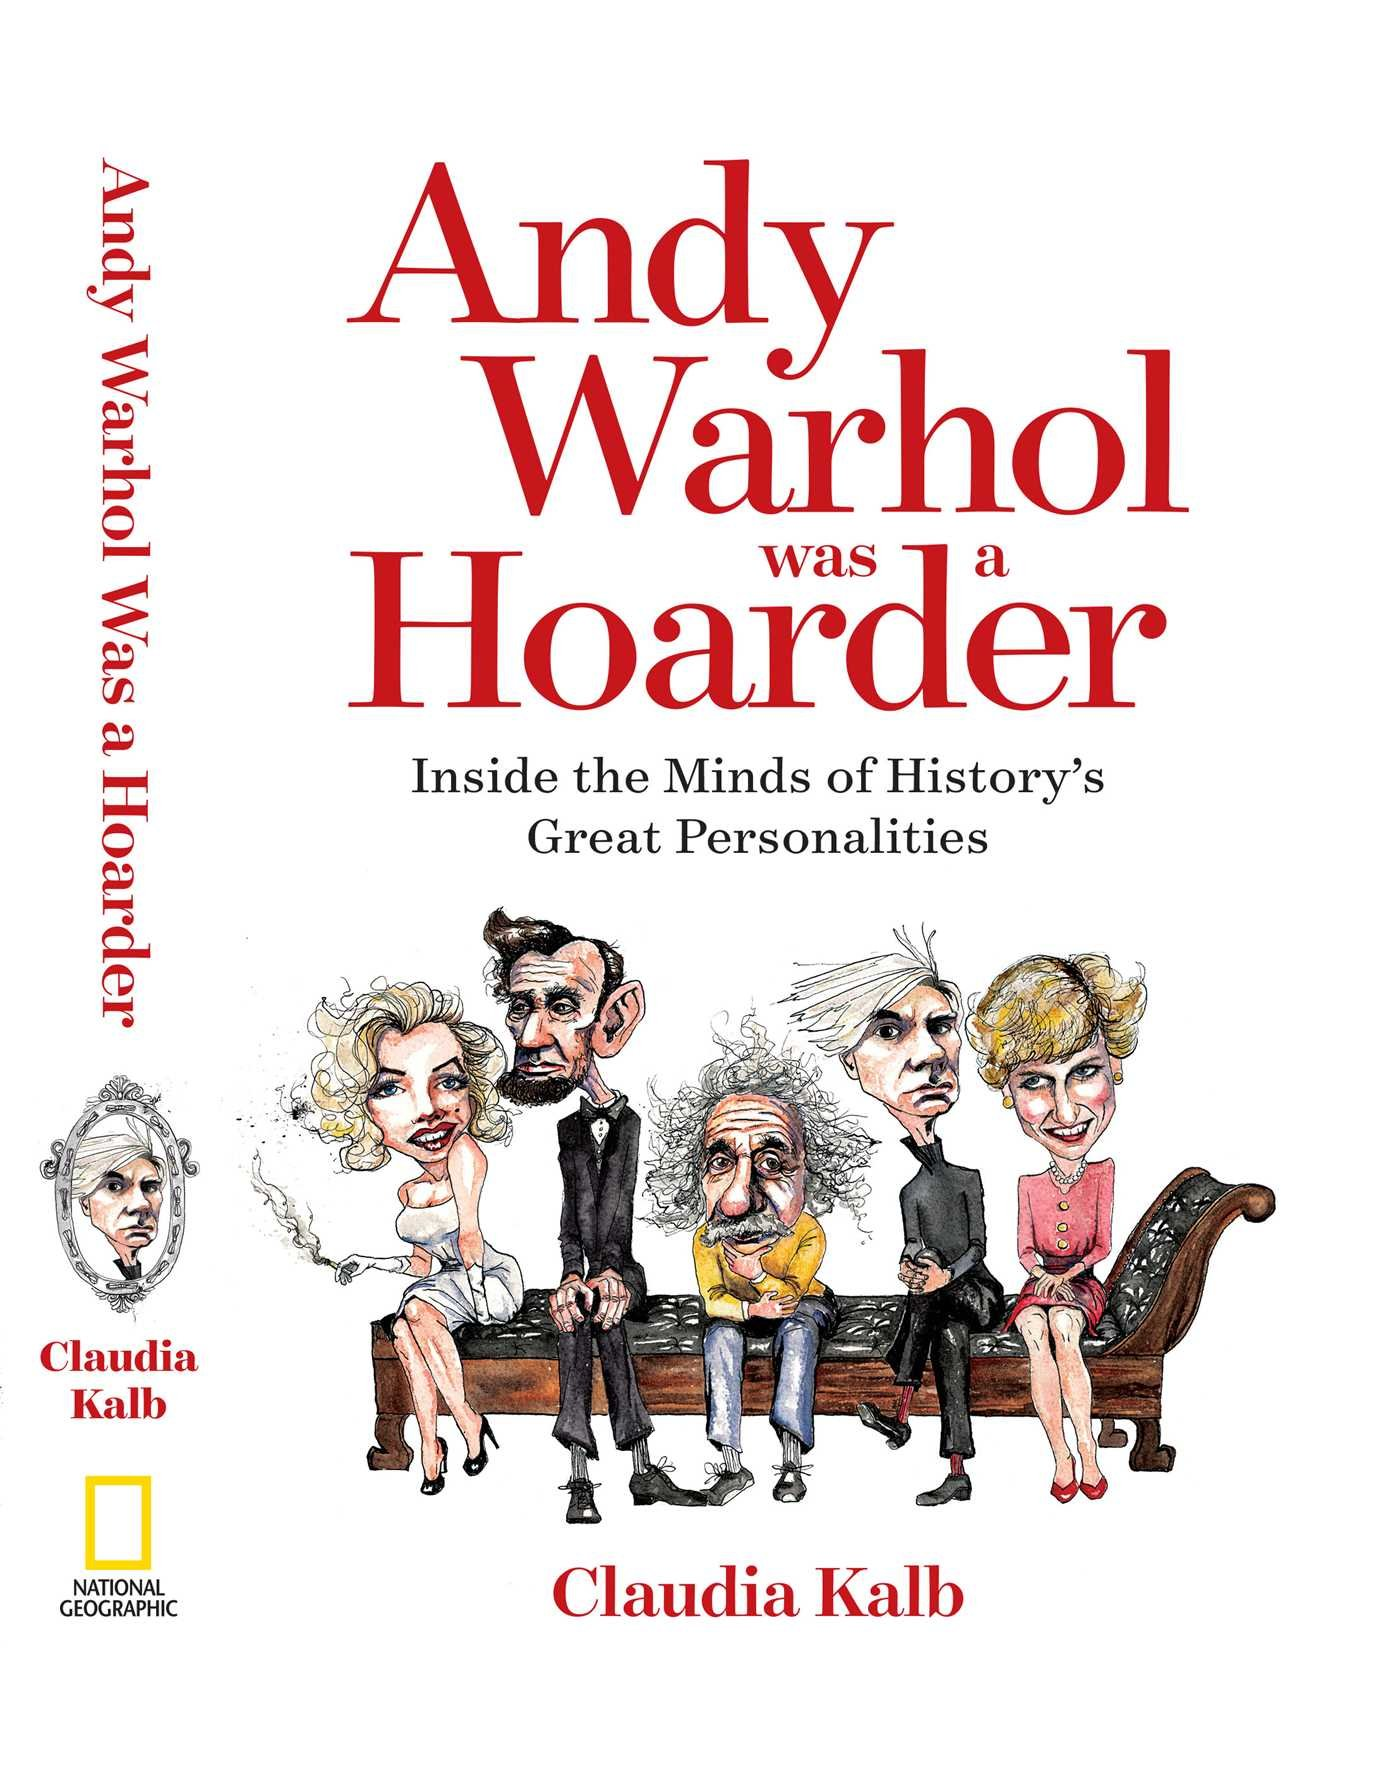 Andy Warhol Was a Hoarder: Inside the Minds of History's Great Personalities